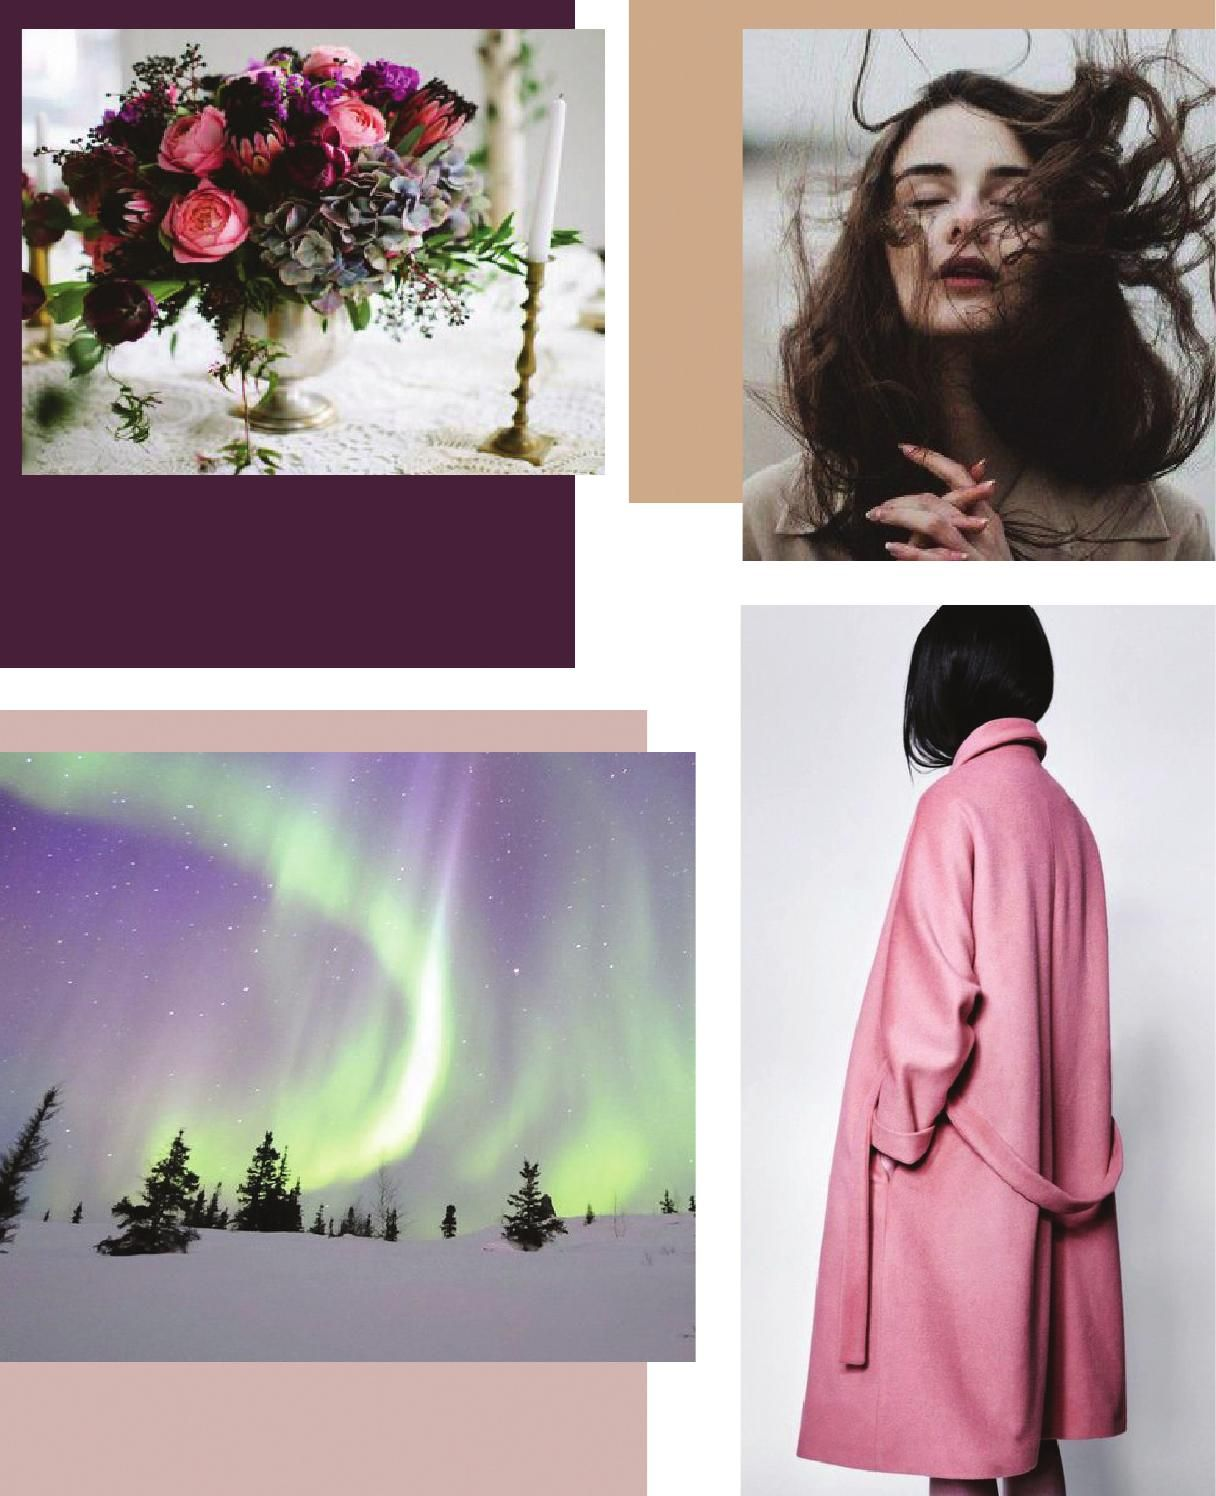 TREND BOOK | Mood Board | Aw18 trends, Fashion 2018 trends ...